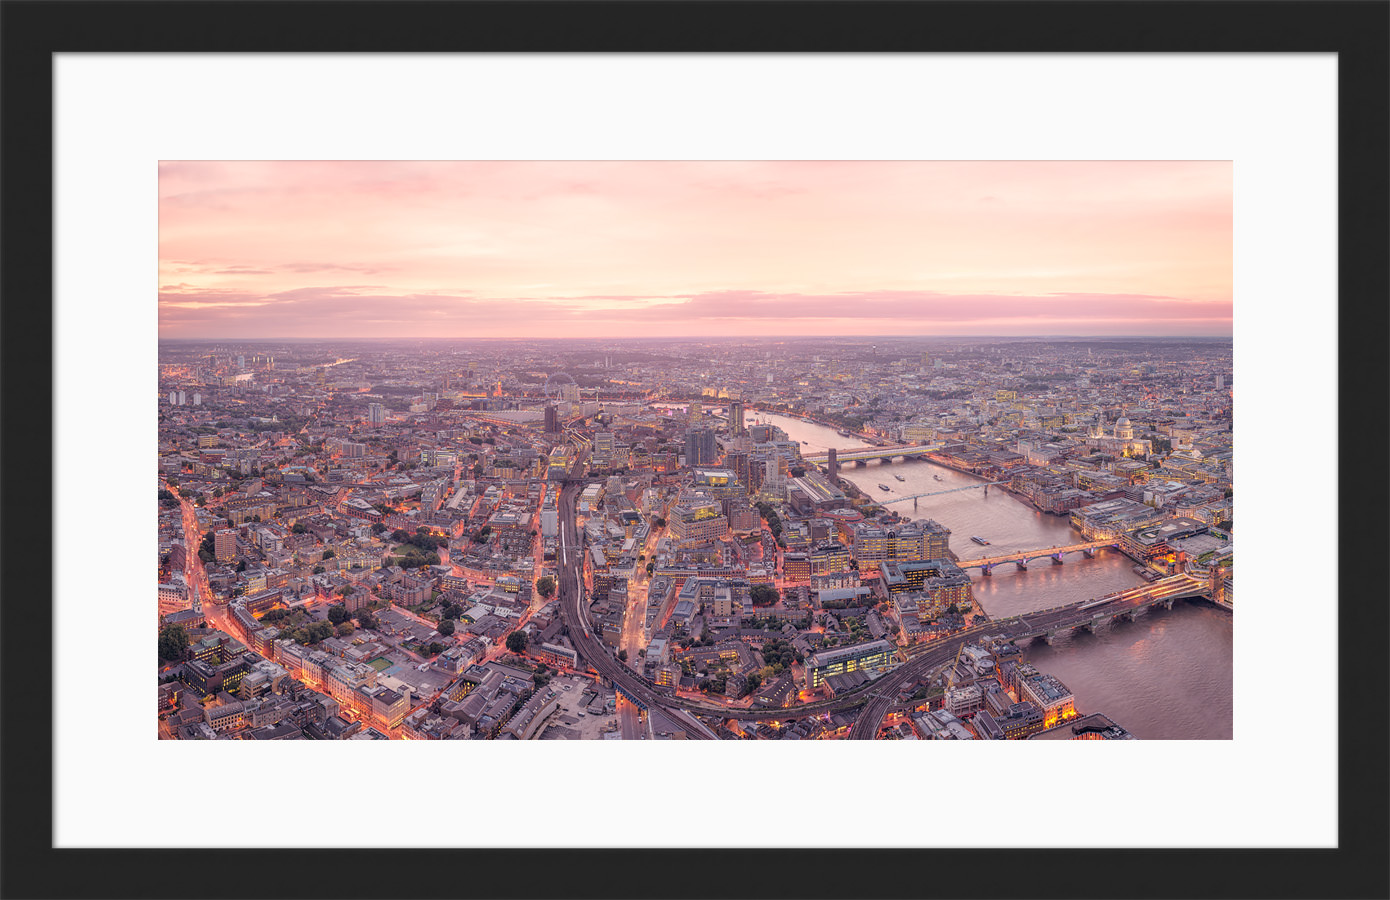 Late Sunset Looking West - Framed London High Resolution Photo